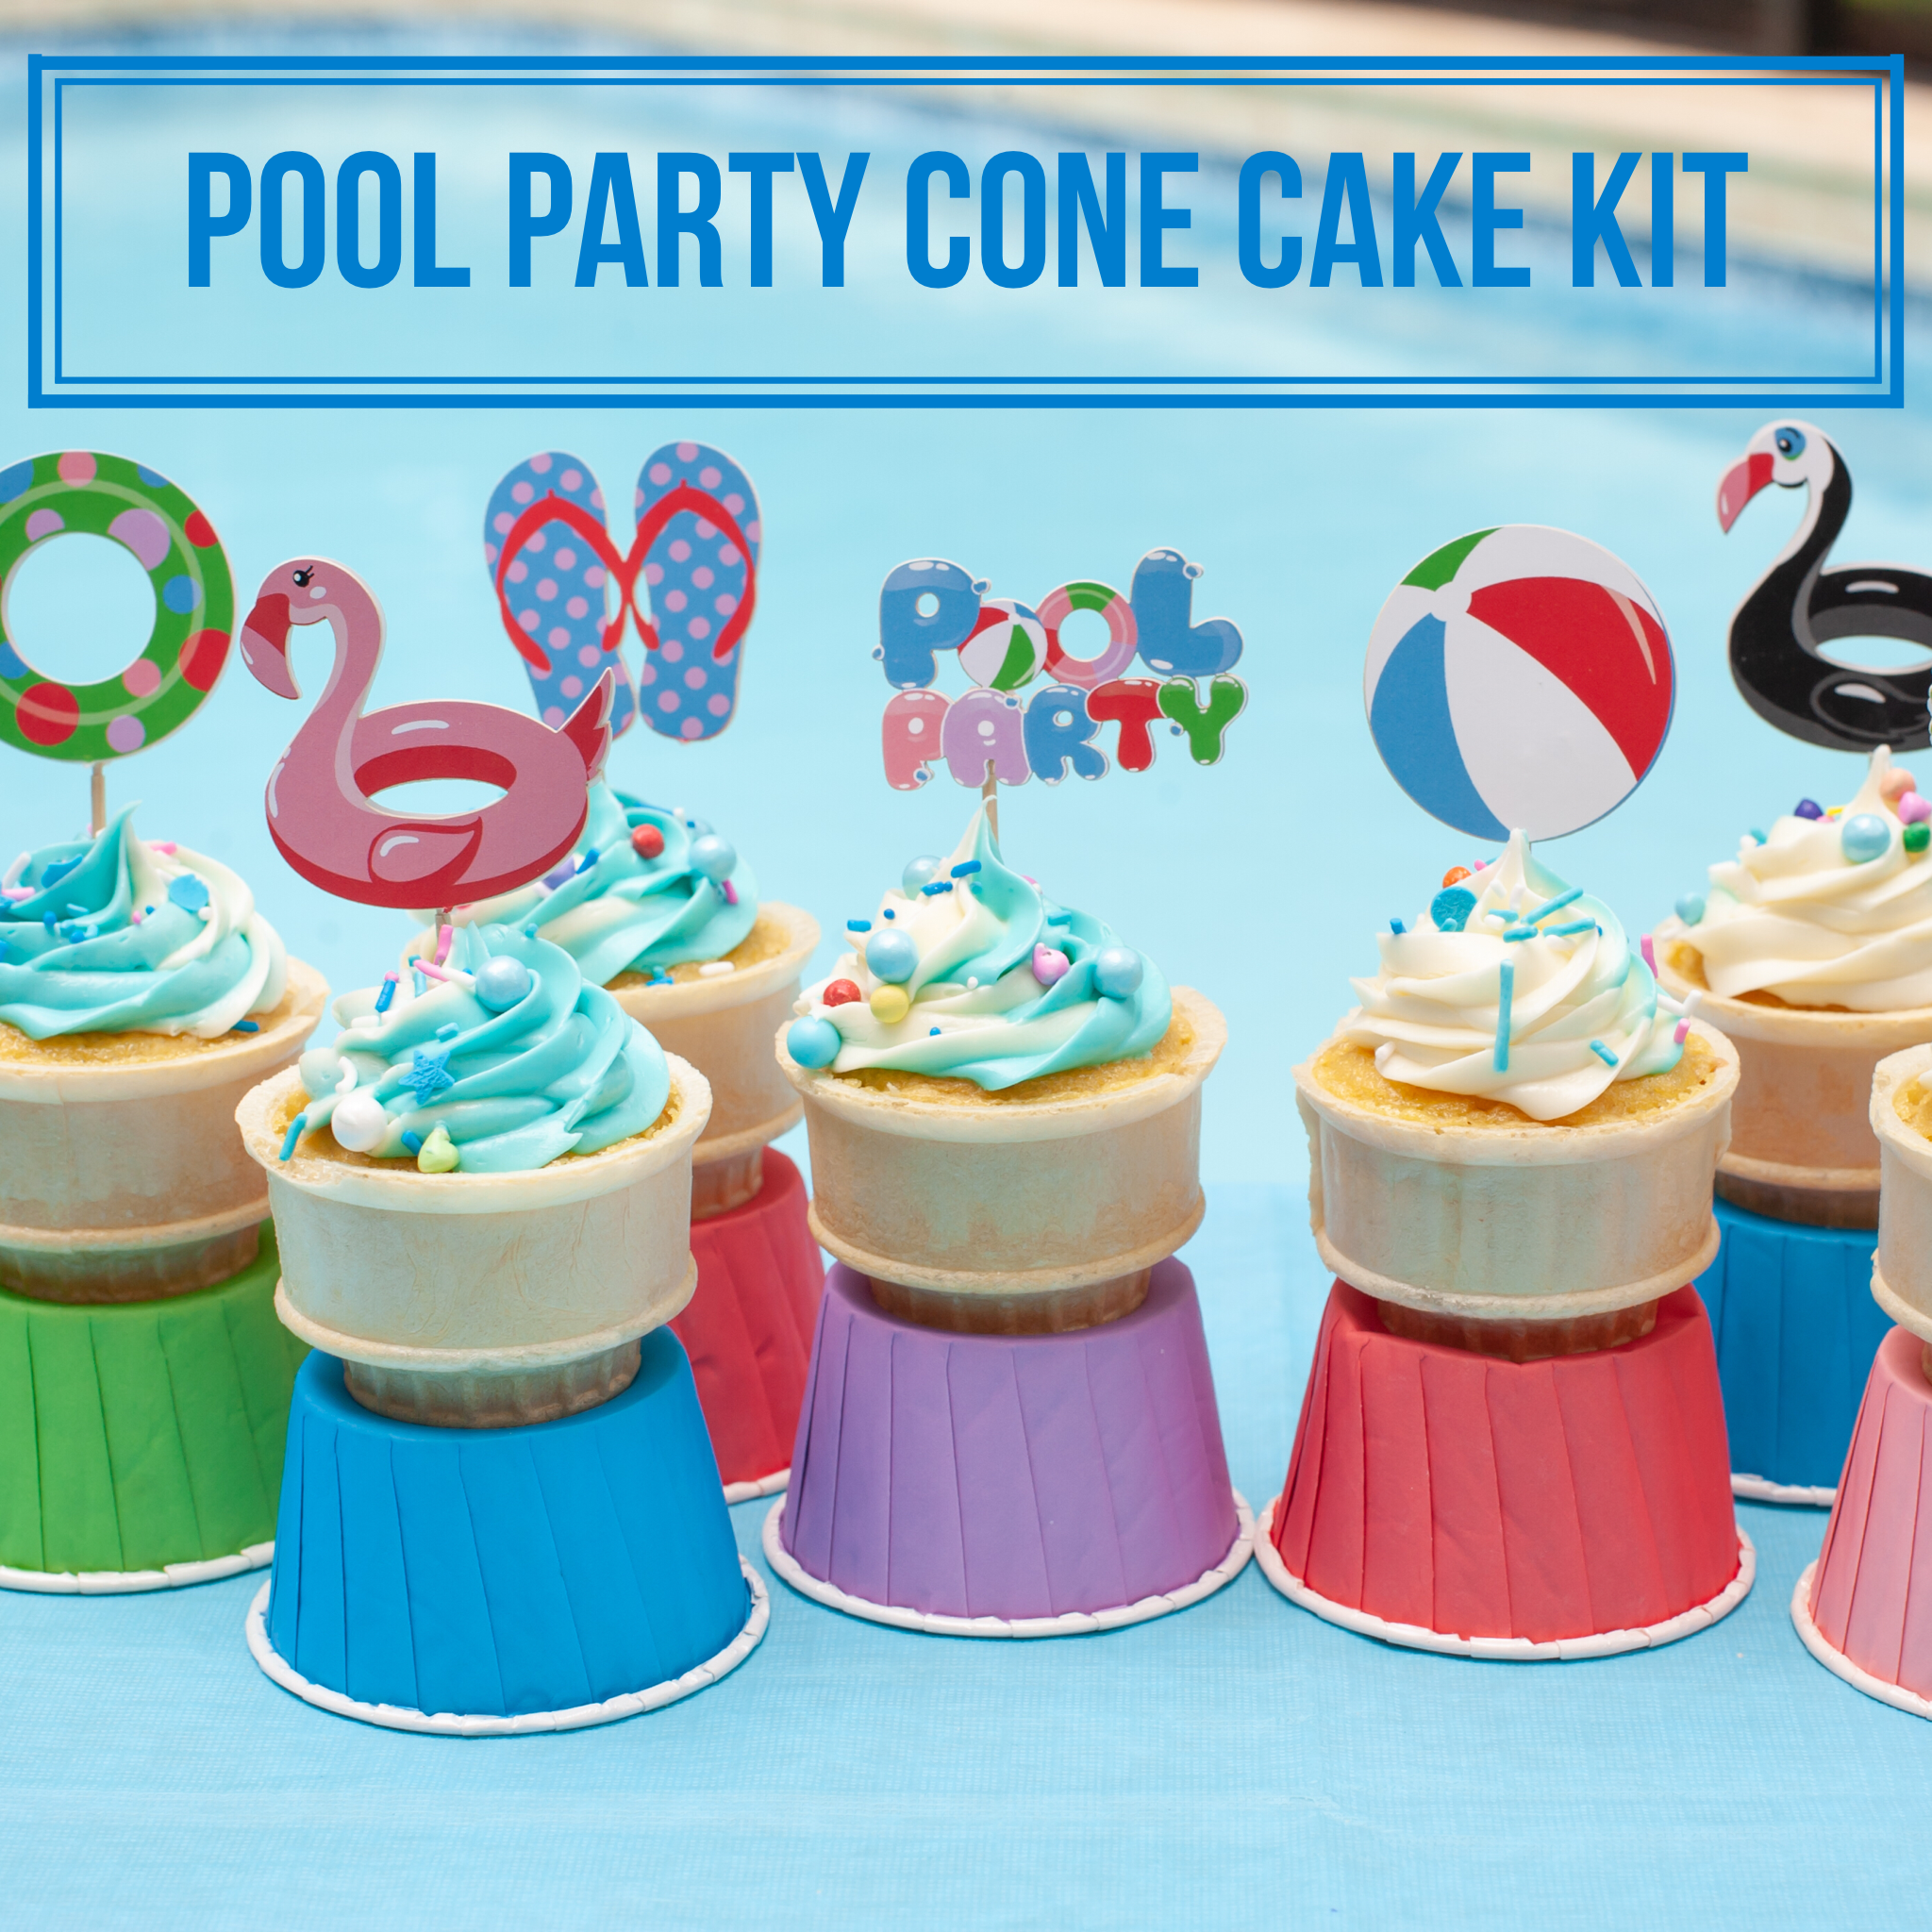 Love Bug Cone Cakes | Pool Party Ideas | Party, Cake, Party kit